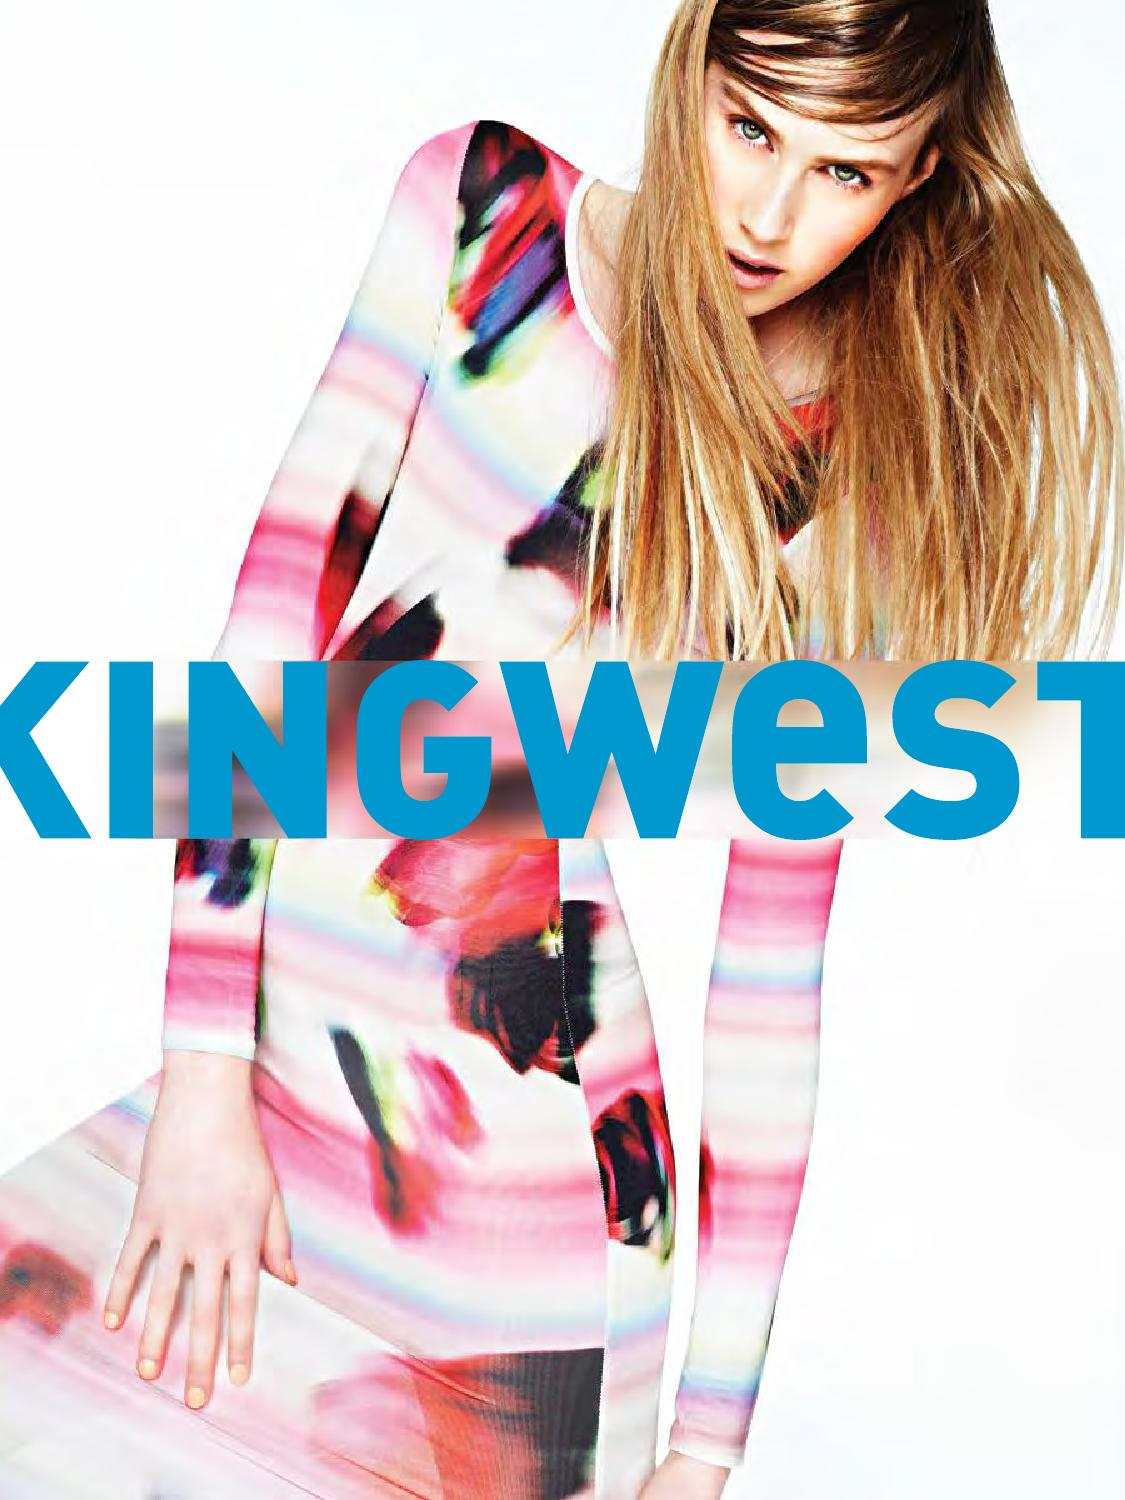 kingwest magazine by kingwest magazine